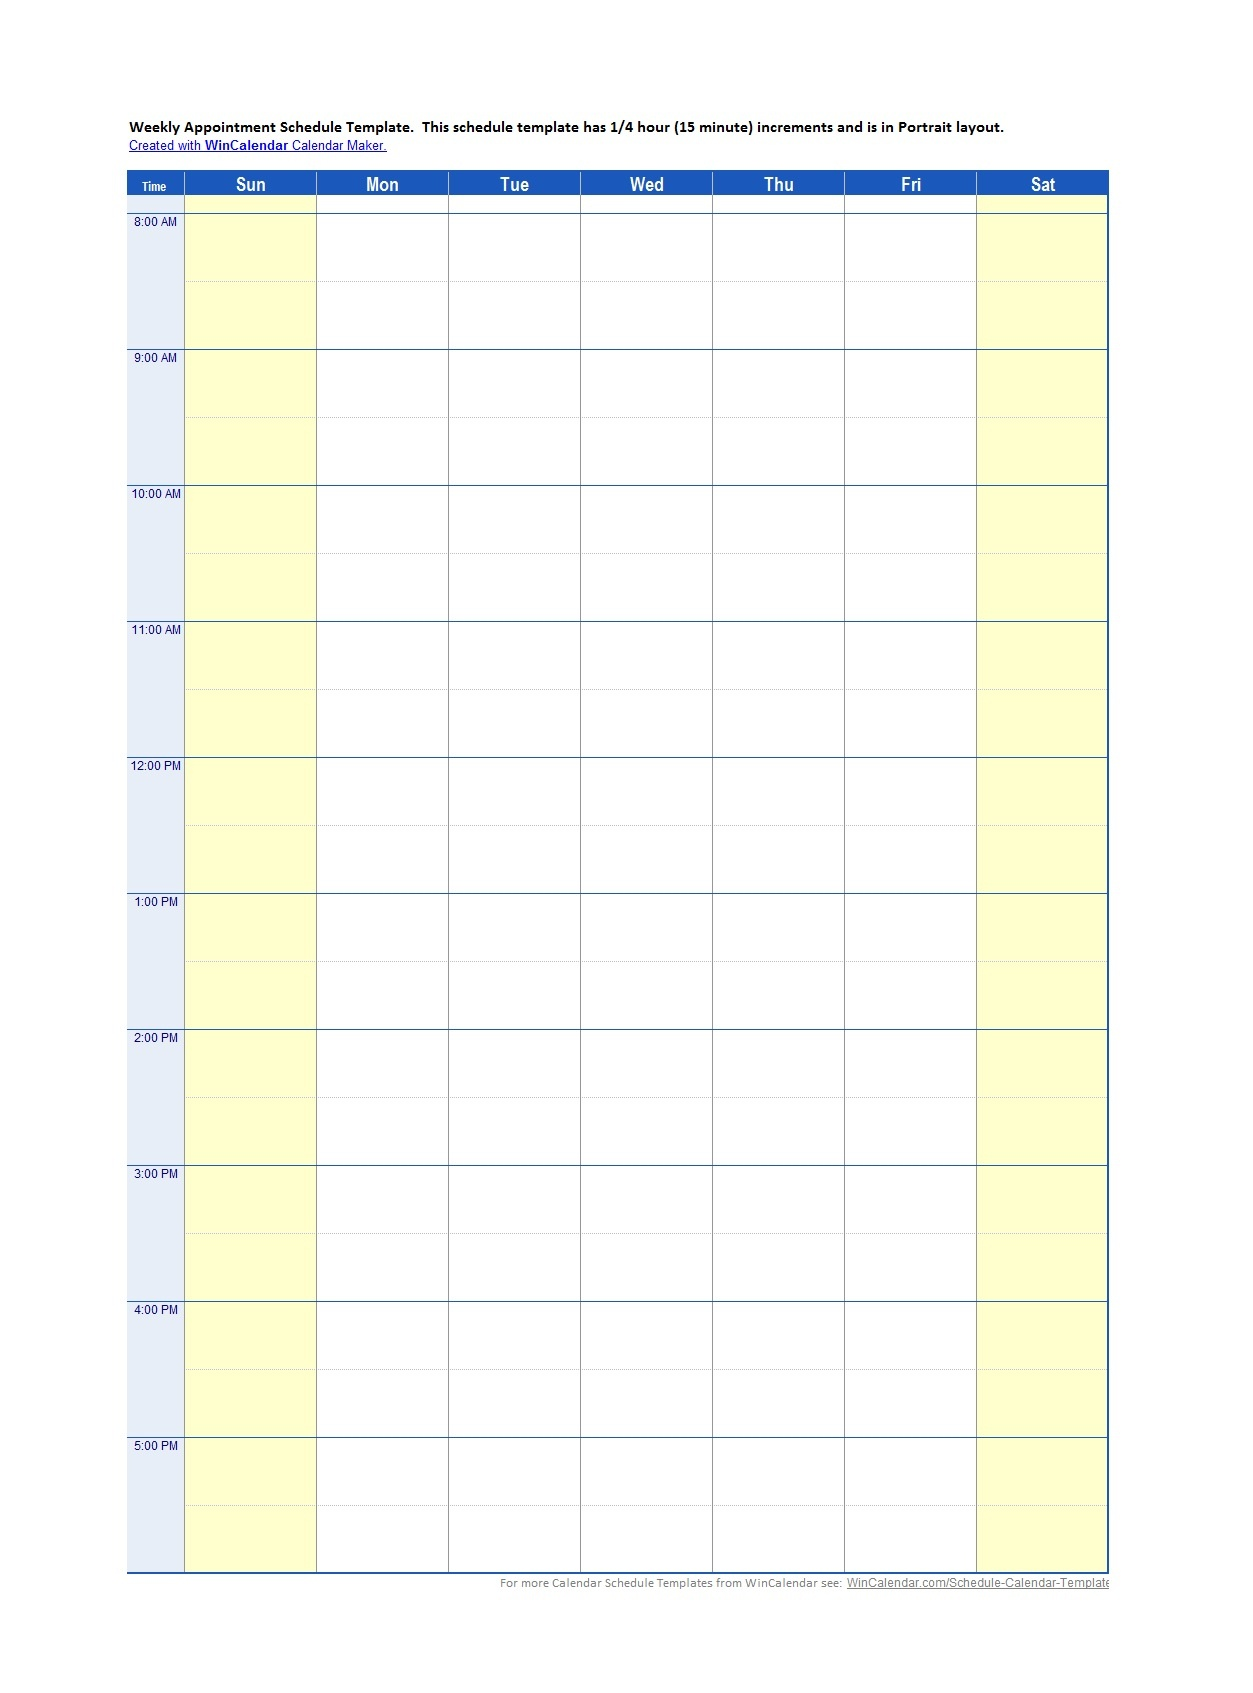 45 Printable Appointment Schedule Templates [& Appointment Calendars] - Free Printable Appointment Sheets